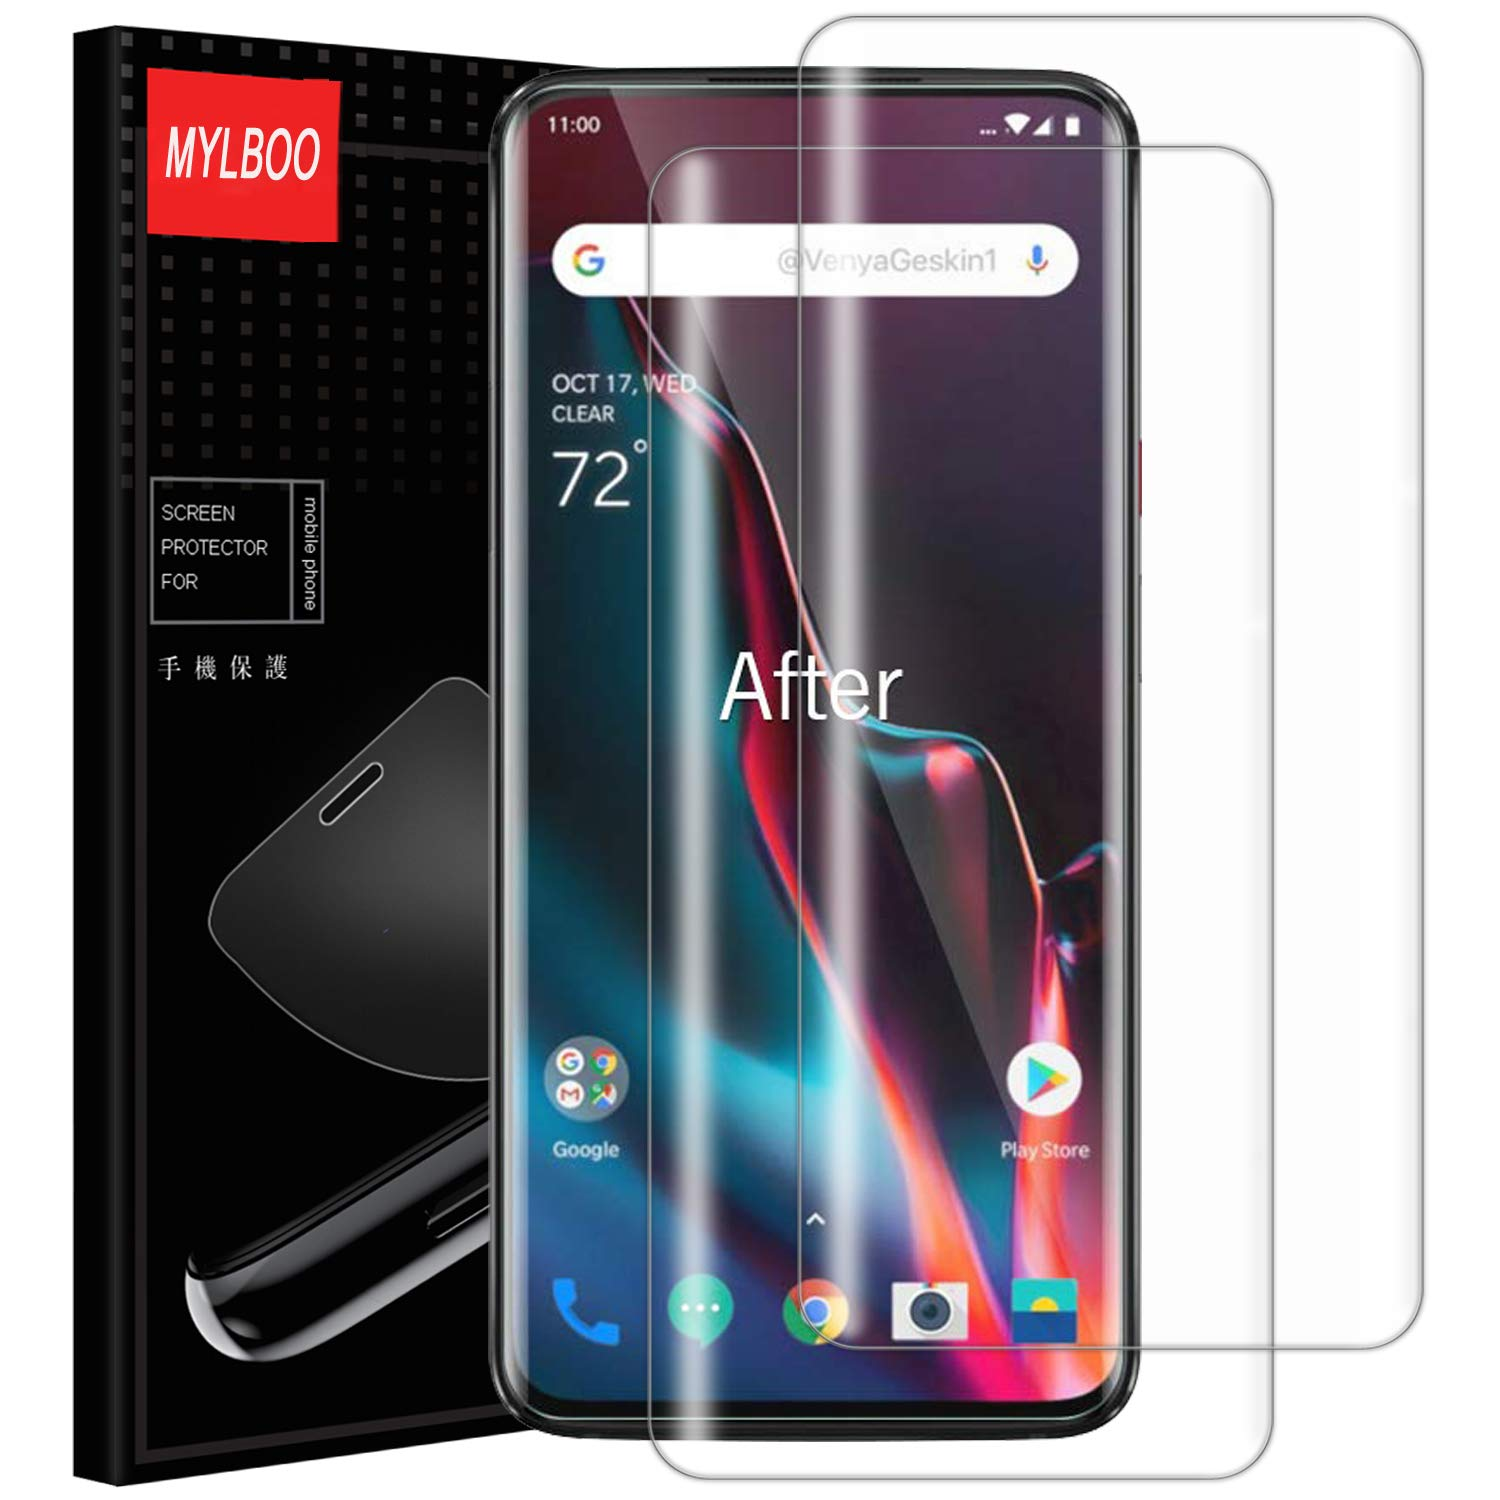 Mylboo Screen Protector for Oneplus 7 Pro